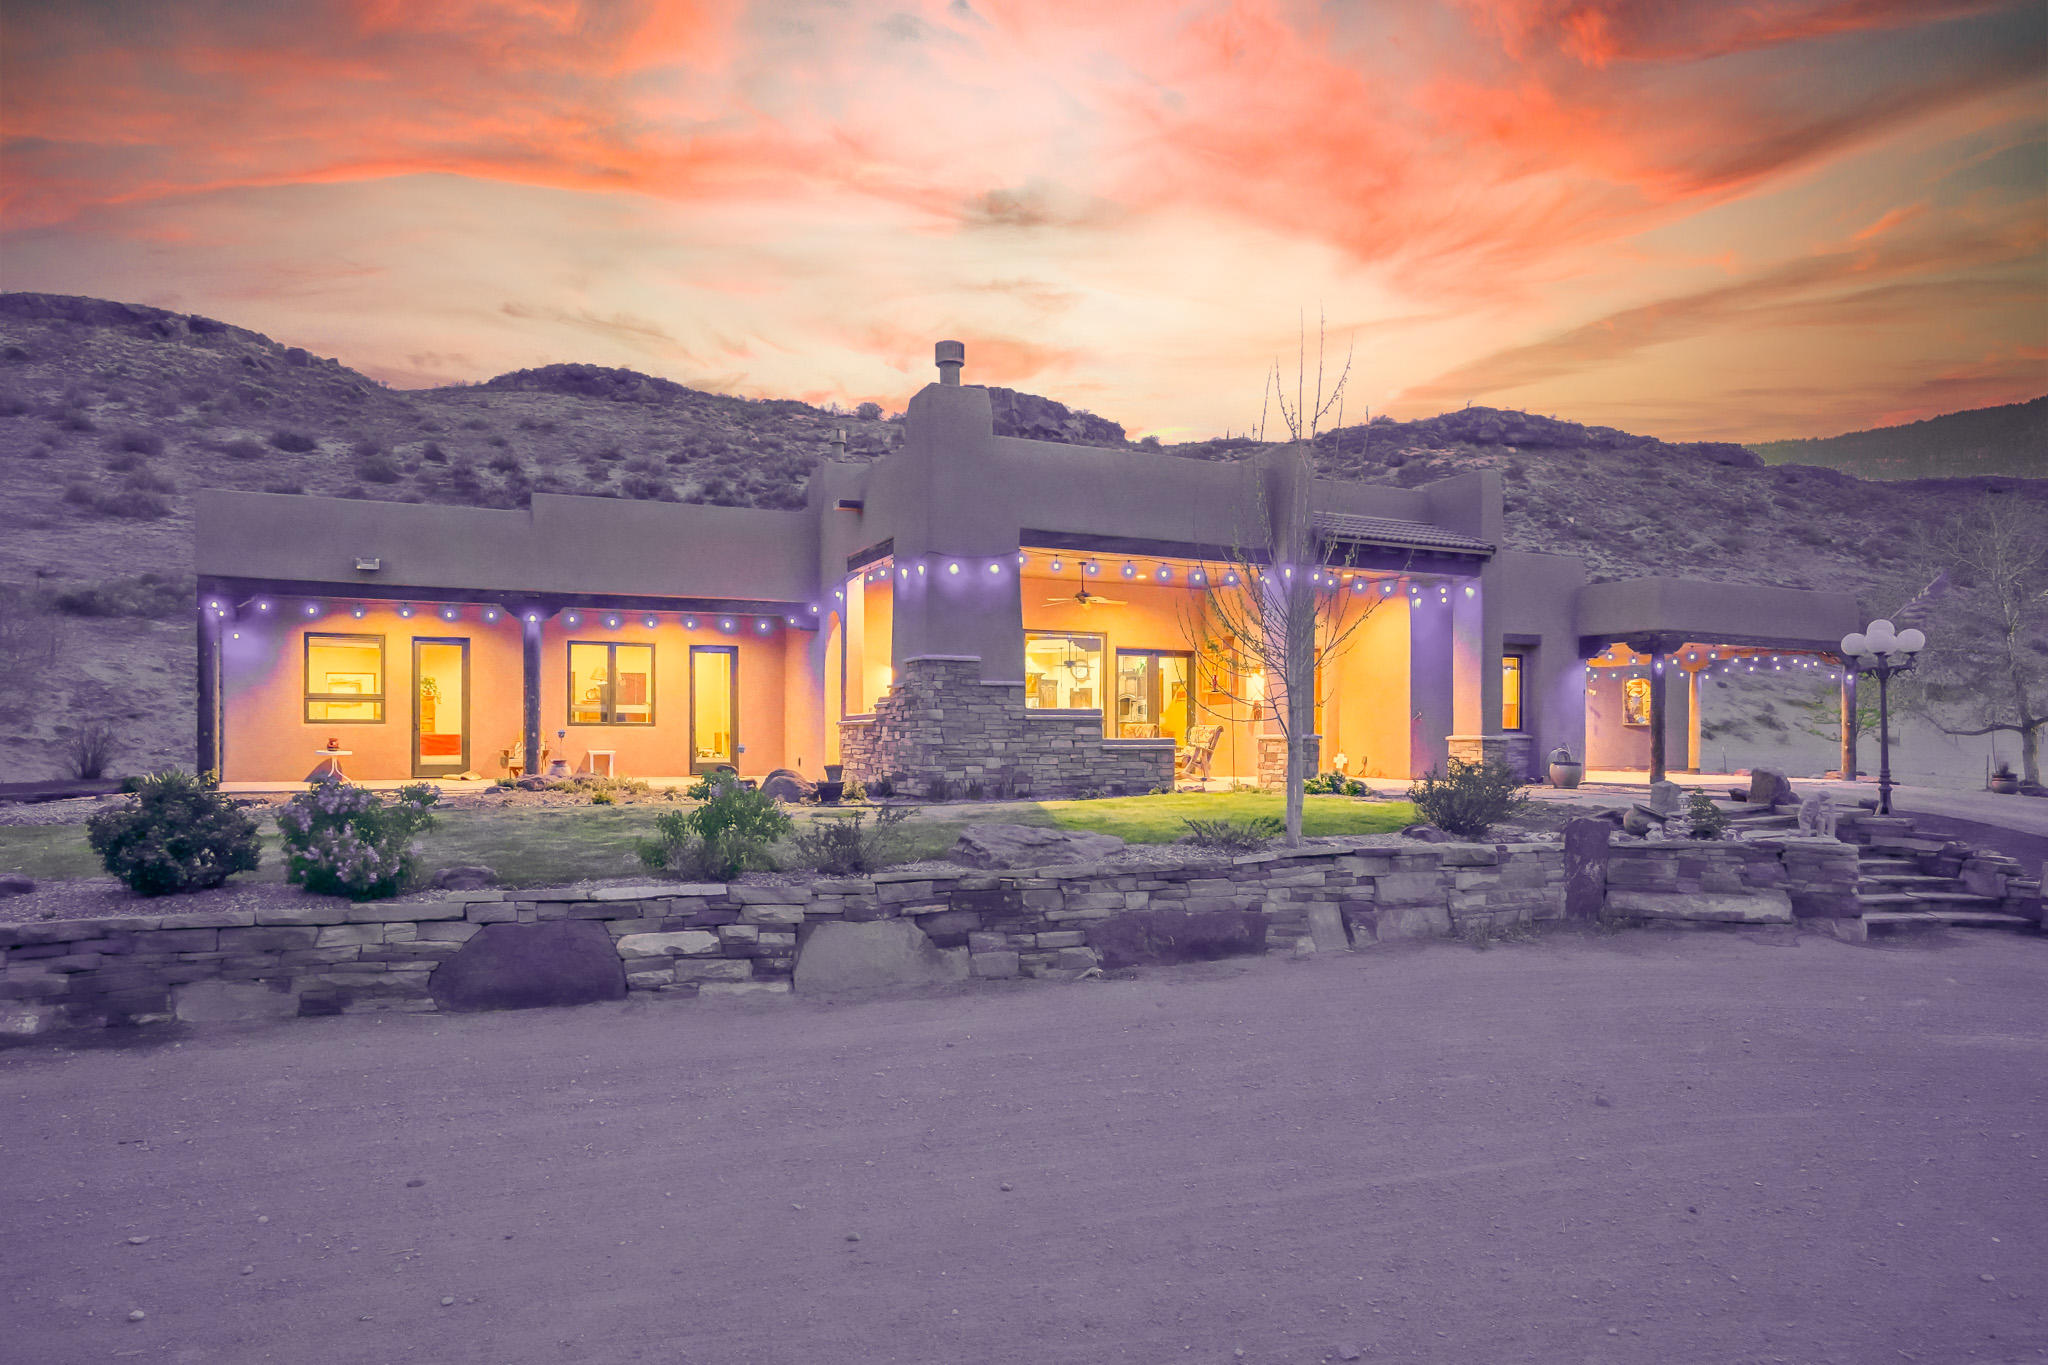 Beautiful setting on this 8 acre estate.   Custom single story Pueblo style home with great views of the Sandia Mountains.  Open floor plan and abundant sunlight throughout.  High quality finishes and great design make this gem a warm and inviting  retreat.  The kitchen is a chef's delight and features handcrafted alder cabinetry, high end stainless steel appliances, and granite counters. Ditch irrigated fully fenced pasture, a 2 stall barn with hay storage and a tack room complete this peaceful retreat.